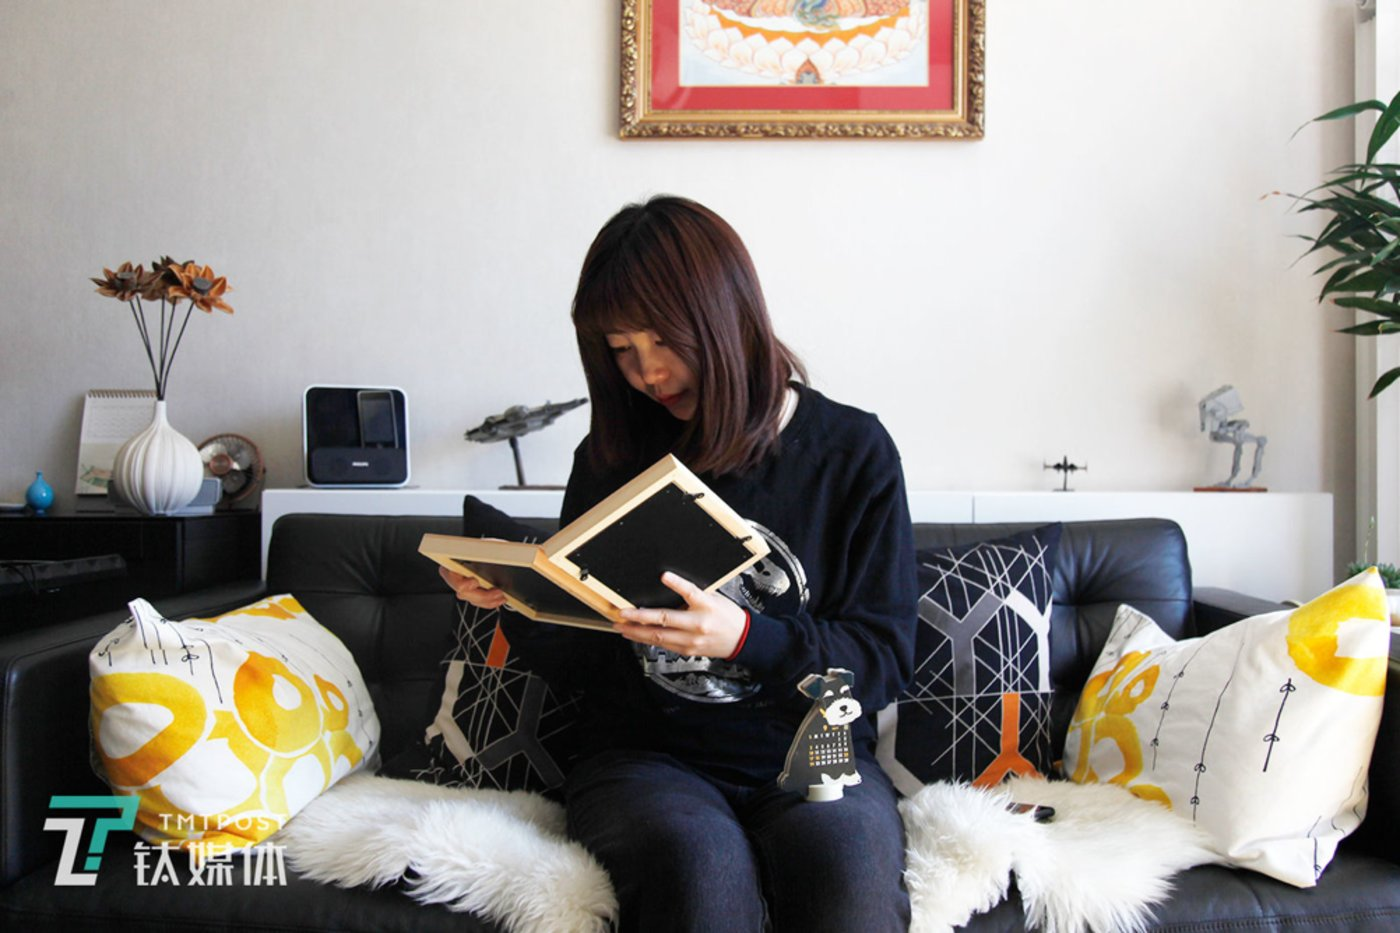 March 23, Fengtai, Beijing. Bei Bei (a pseudonym) looks at photos of her beloved pet dog Nari.